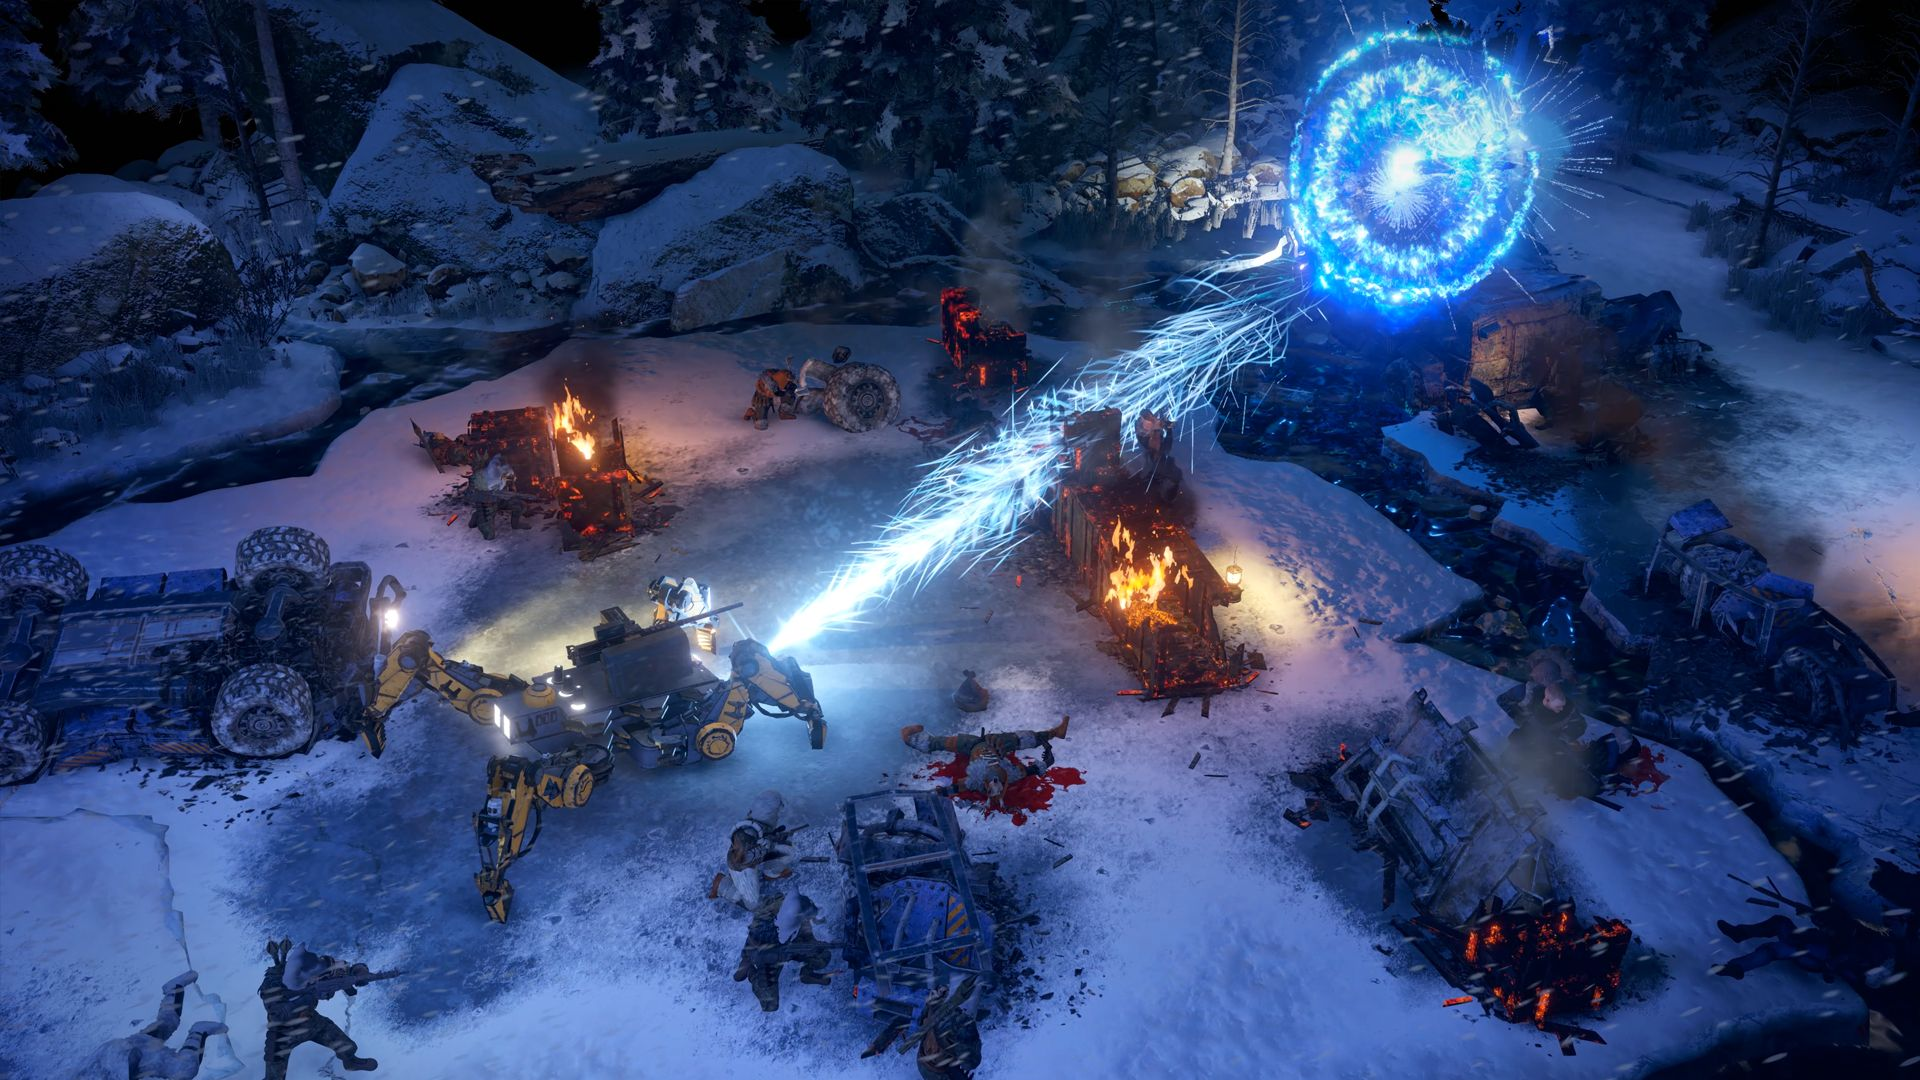 Wasteland 3 Patch 1.4.0 To Introduce Exciting New Features